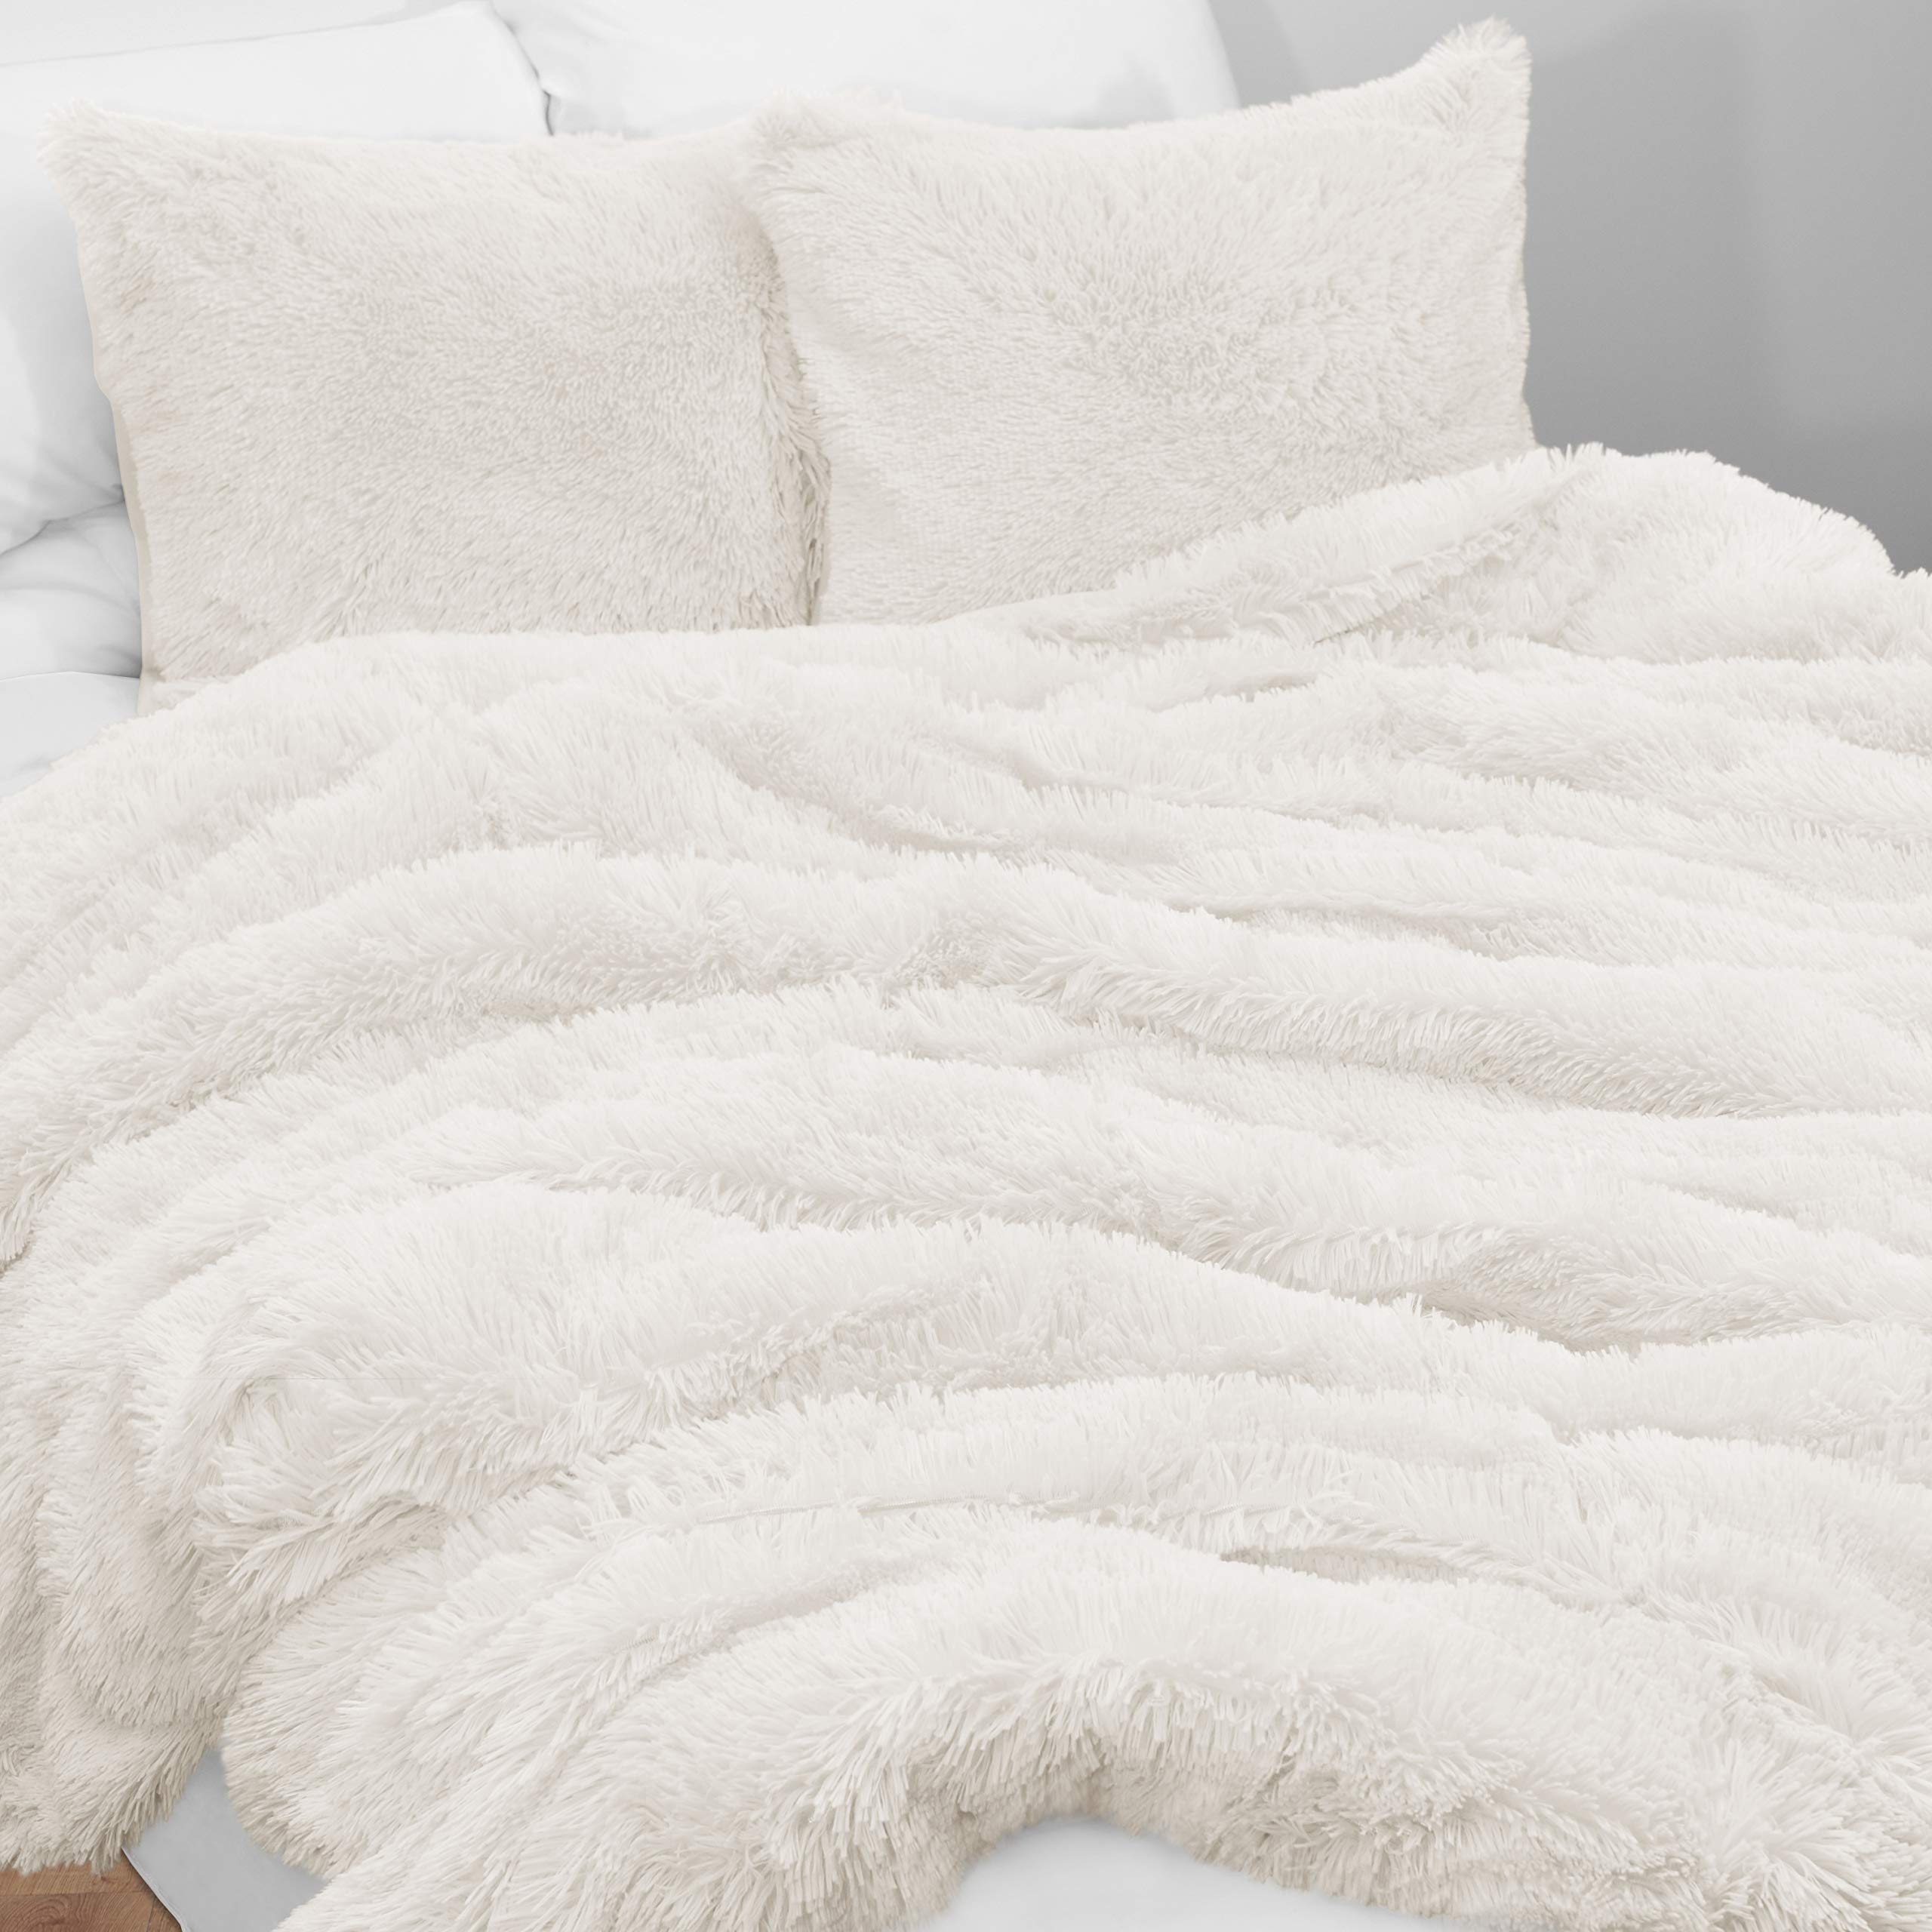 KB & Me Boho Off White Fuzzy Faux Fur Plush Duvet Comforter Cover and Sham 2 pc. Soft Shaggy Fluffy Twin/Twin XL Size Bedding Set Ivory Cream Luxury College Dorm Teen